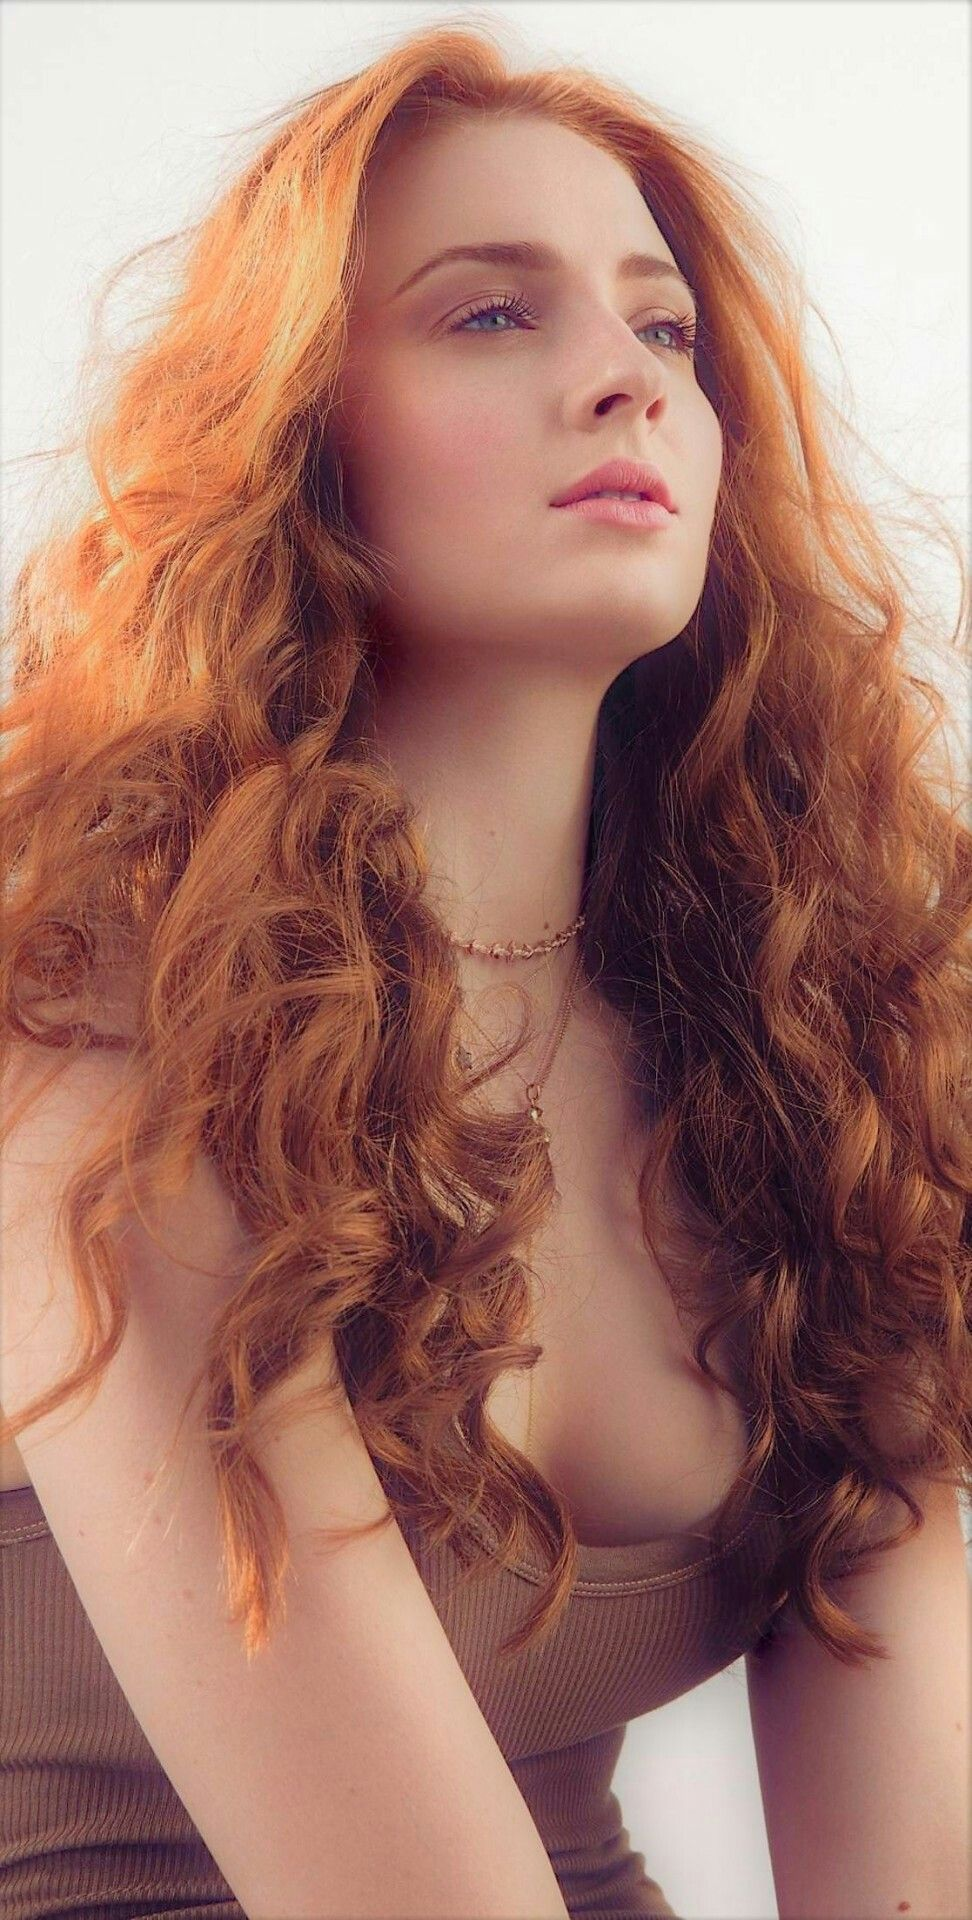 Bushy haired redhead tresses pinterest redheads red heads and